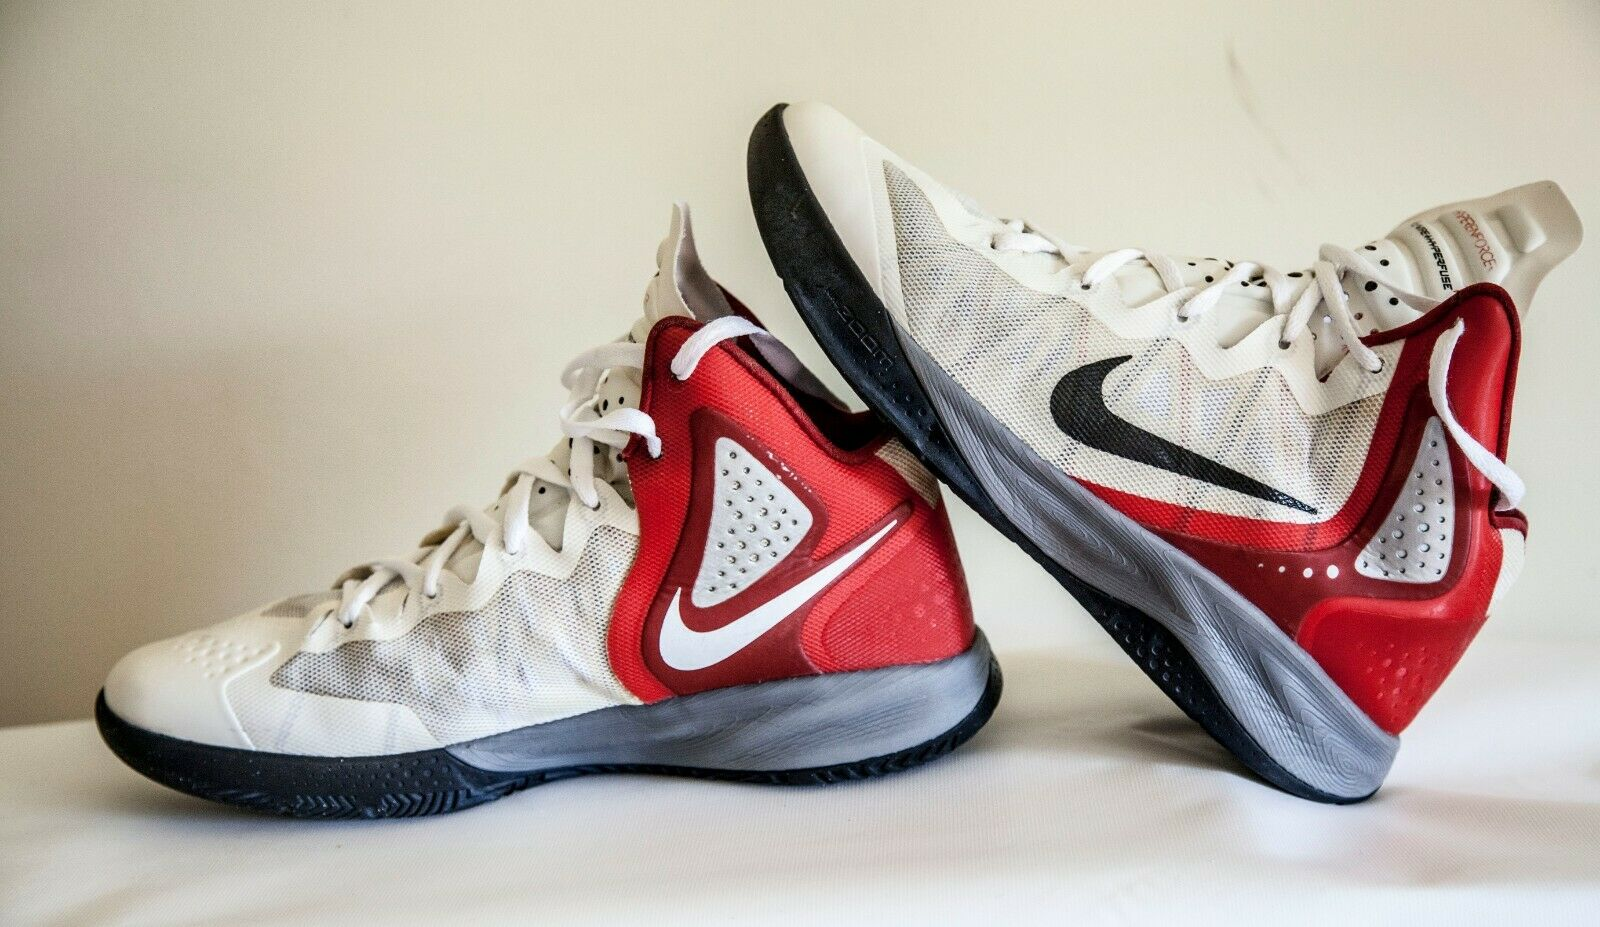 Mens Nike Flywire hyperfuse 11 Red and white 487786-102